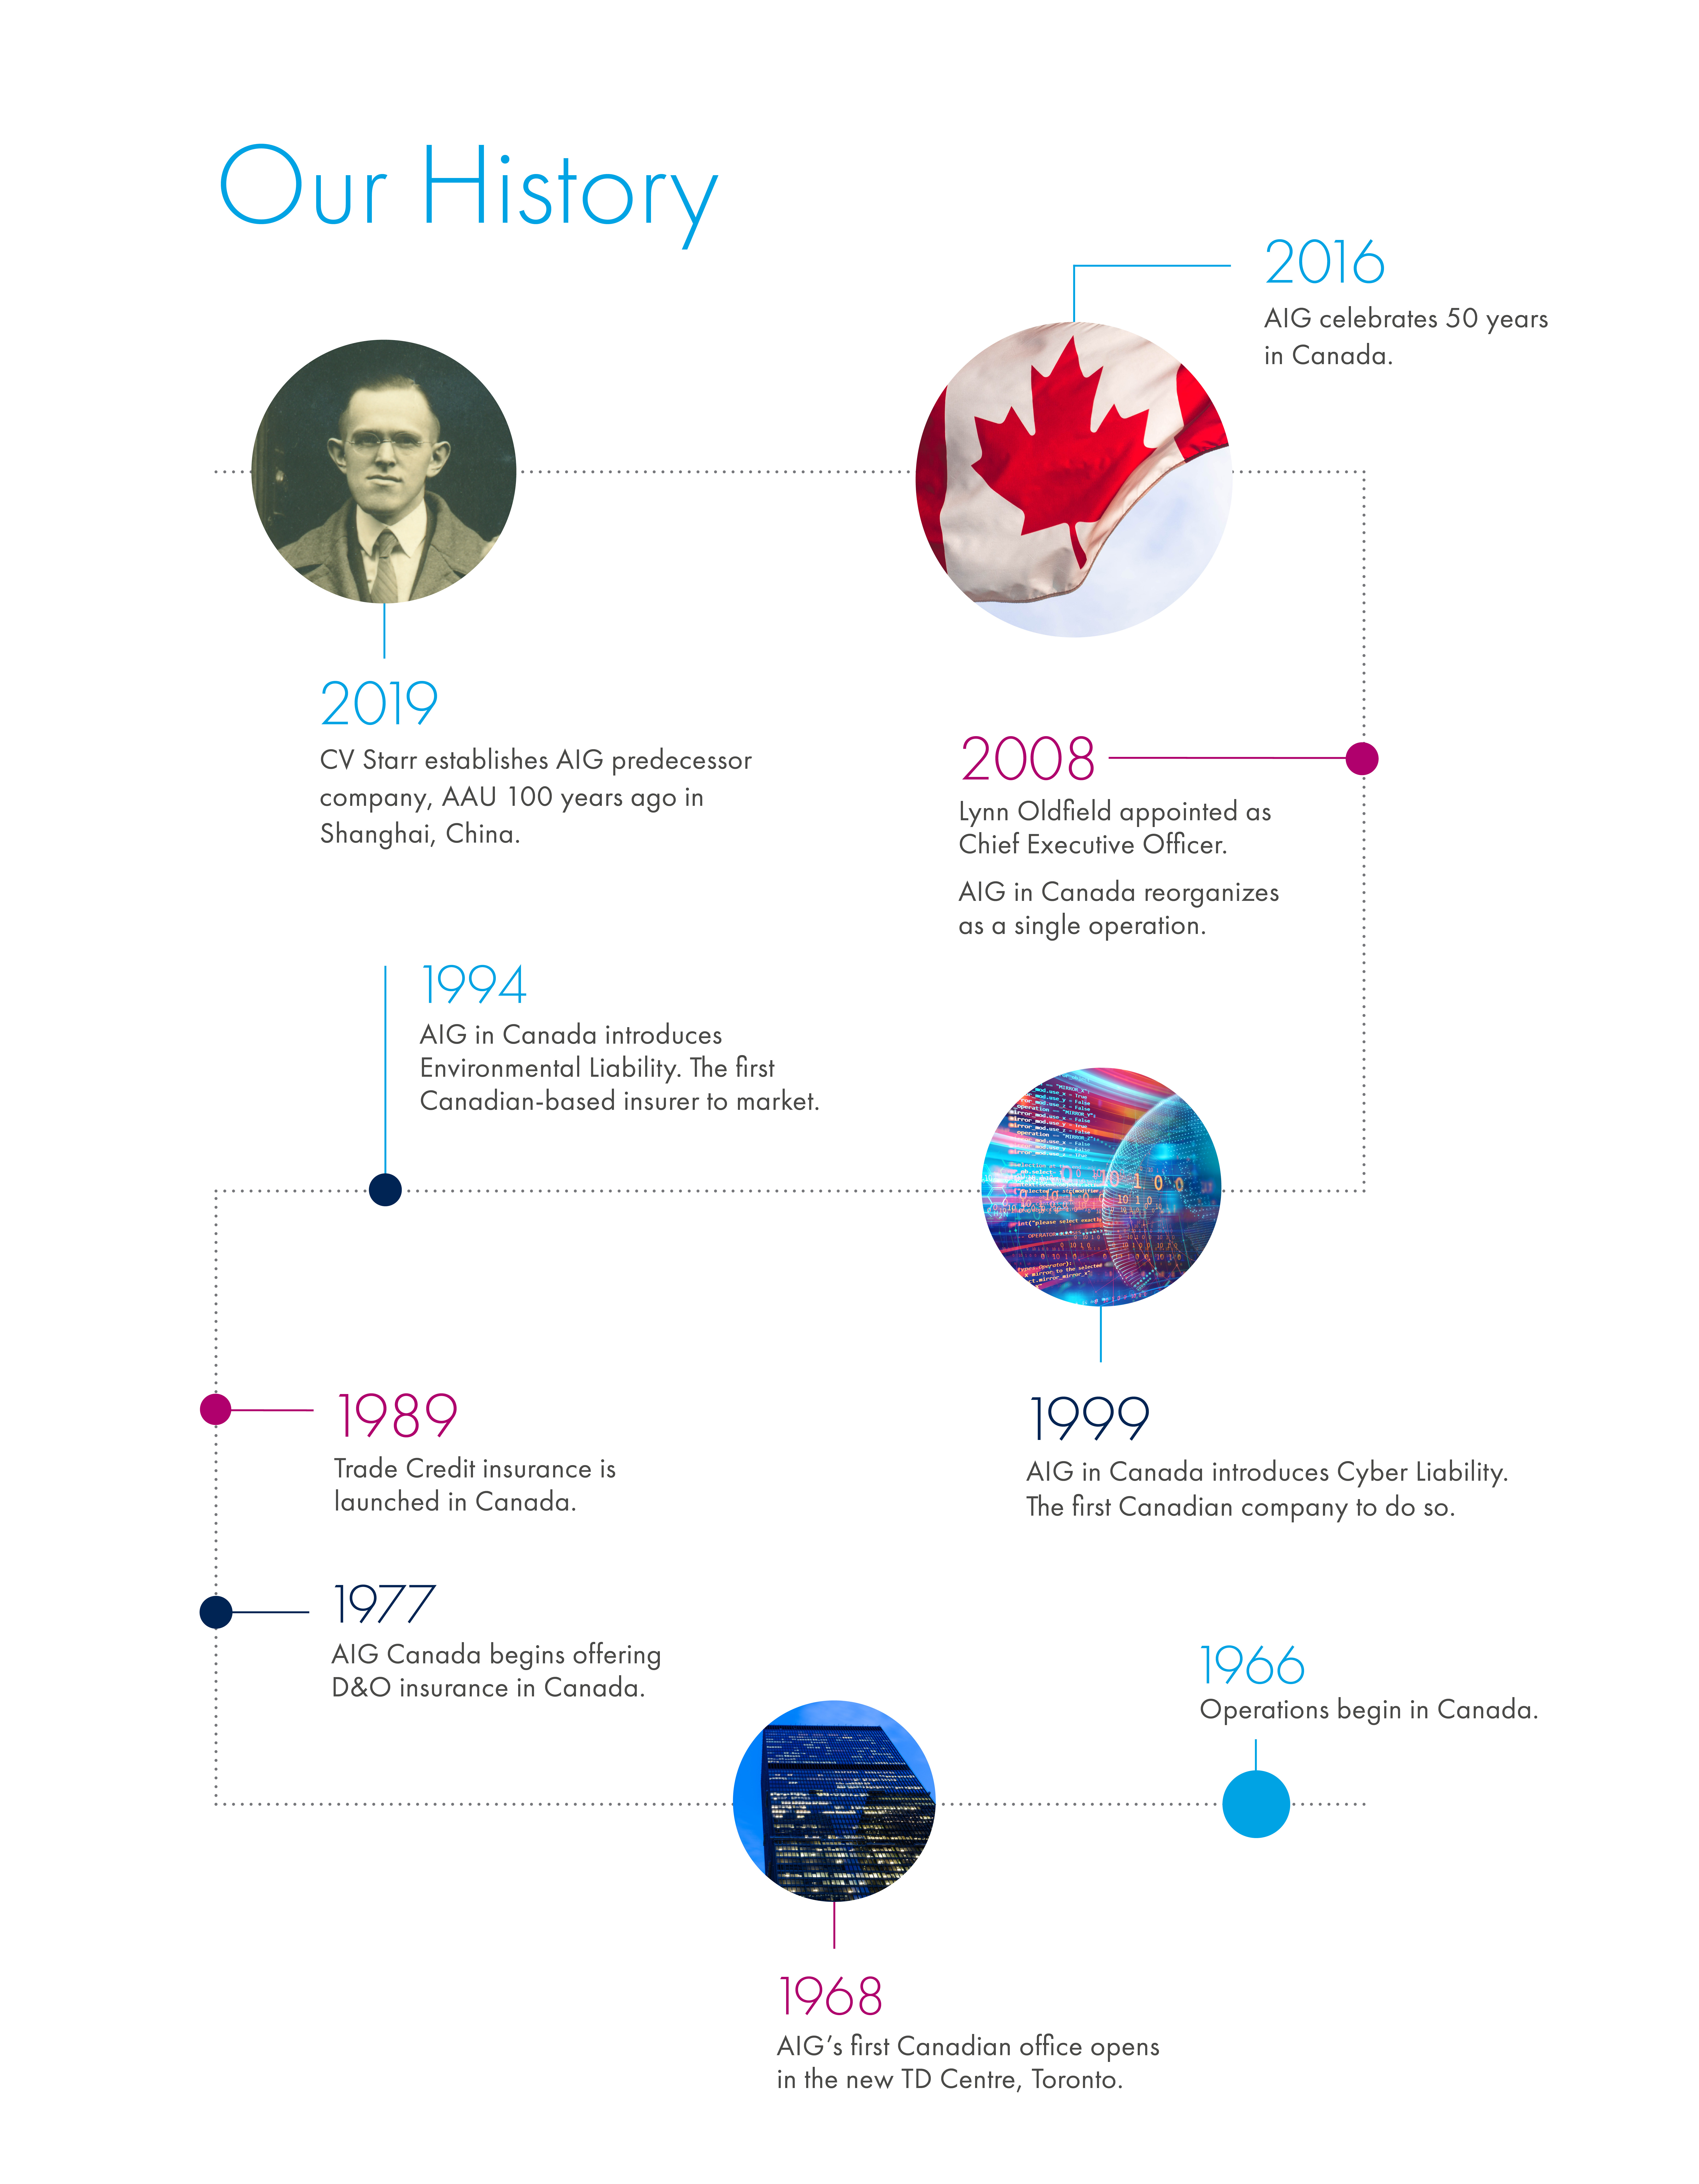 2019 CV Starr establishes AIG predecessor company, AAU 100 years ago in Shanghai, China, 2016 AIG celebrates 50 years in Canada, 2008 Lynn Oldfield appointed as CEO, 1999 AIG Canada introduces Cyber Liability, 1994 AIG Canada introduces Environmental Liability, 1989 Trade Credit insurance is launched, 1977 AIG Canada begins offering D&O insurance, 1968 AIG's first Canadian office opens in Toronto